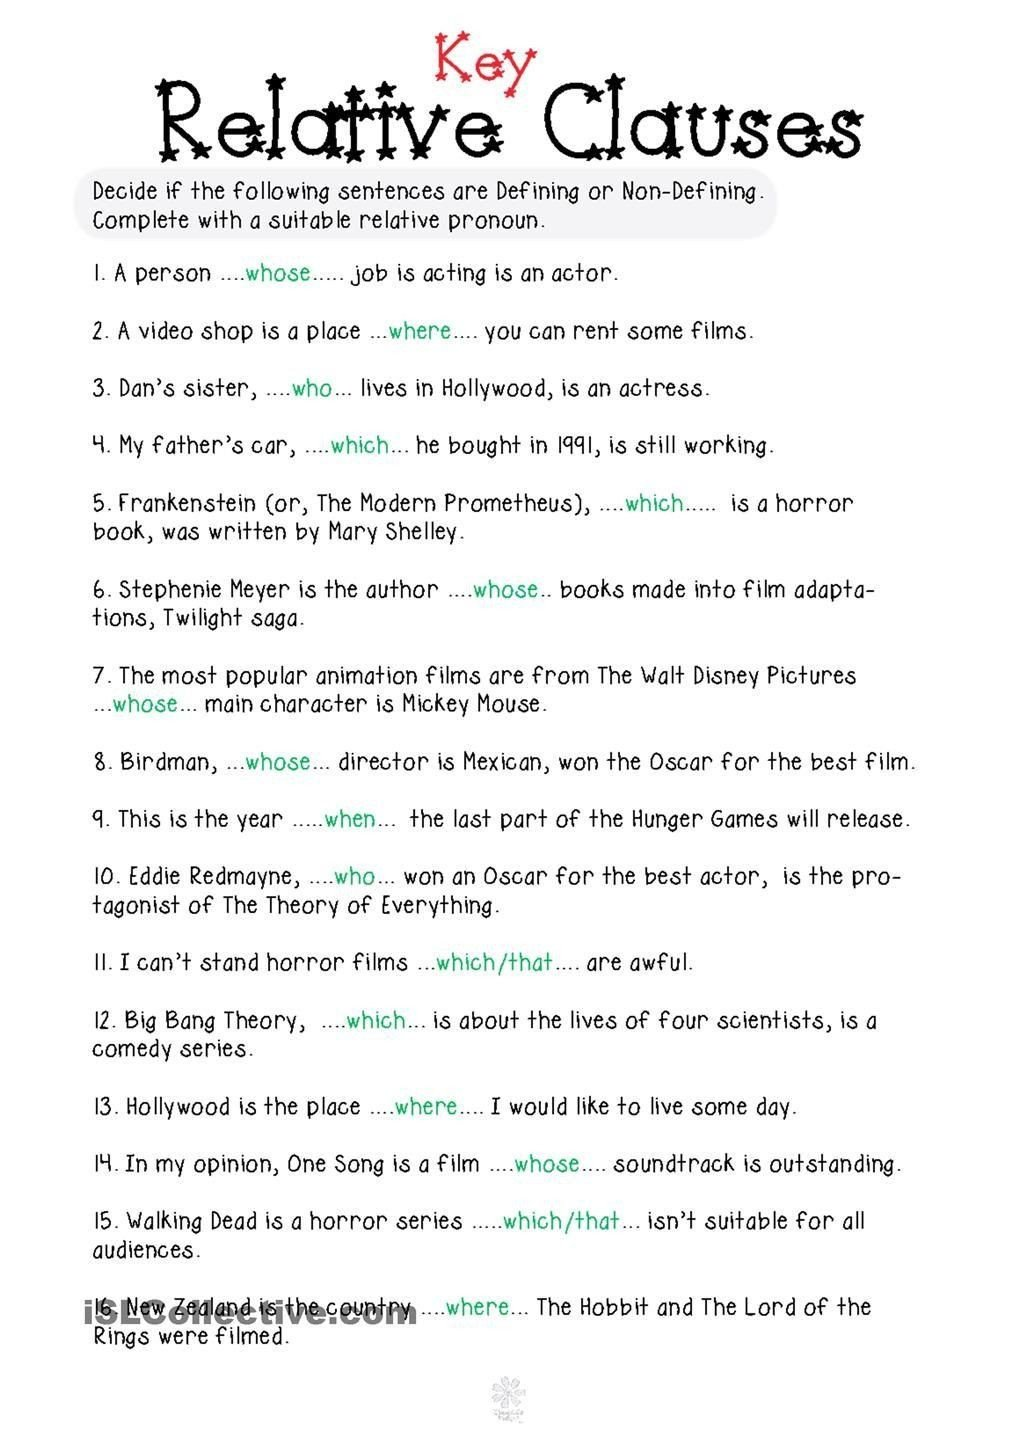 Relative Adverbs Worksheet 4th Grade Relative Pronouns Worksheet Grade 4 Relative Clauses In 2020